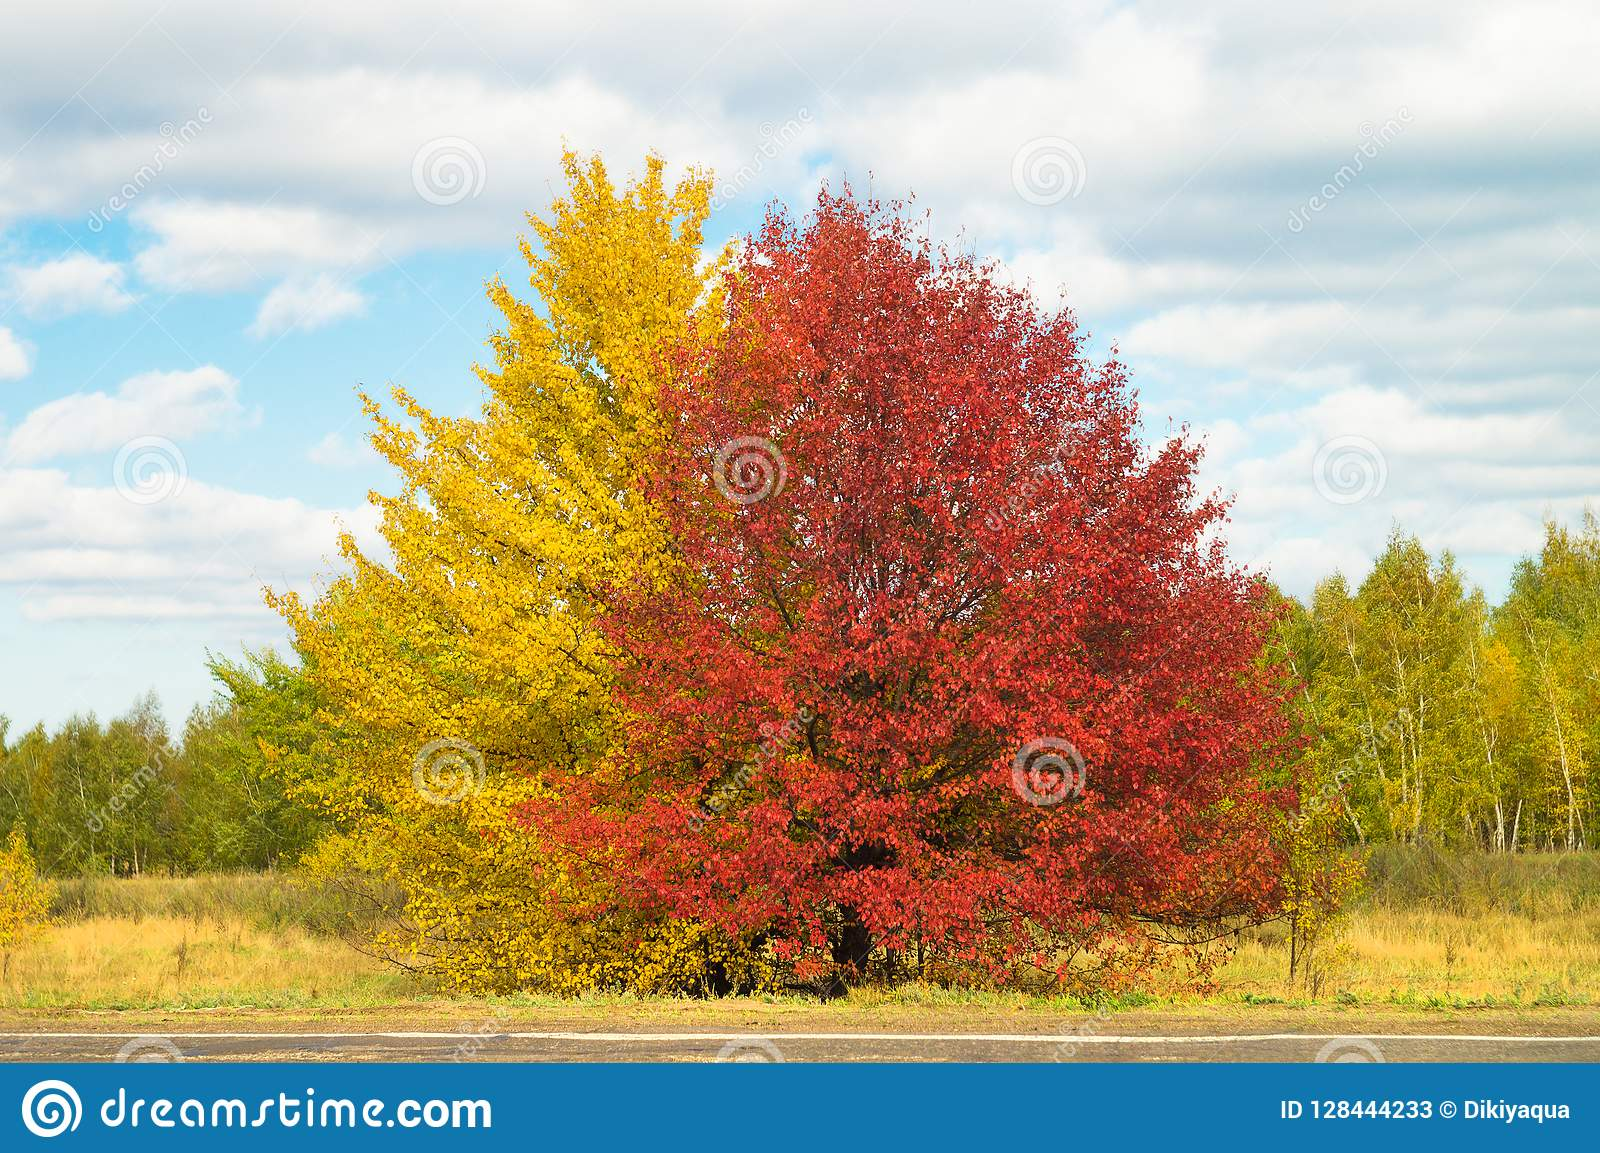 Large spreading yellow and red color bright trees in picturesque autumn valley, against a background of blue sky with sparse cloud